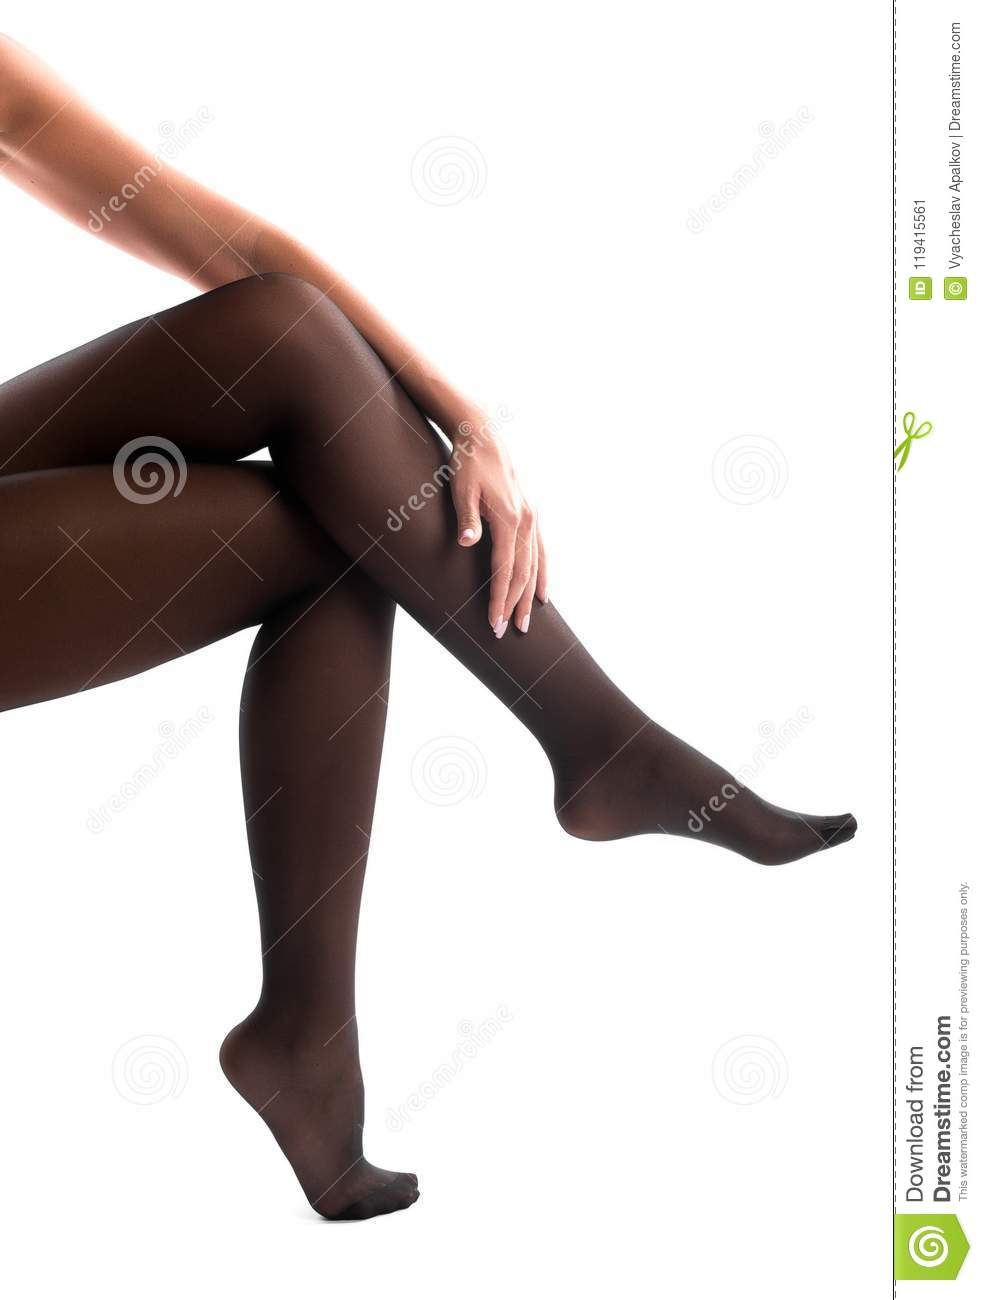 Female arm embracing slender crossed legs isolated